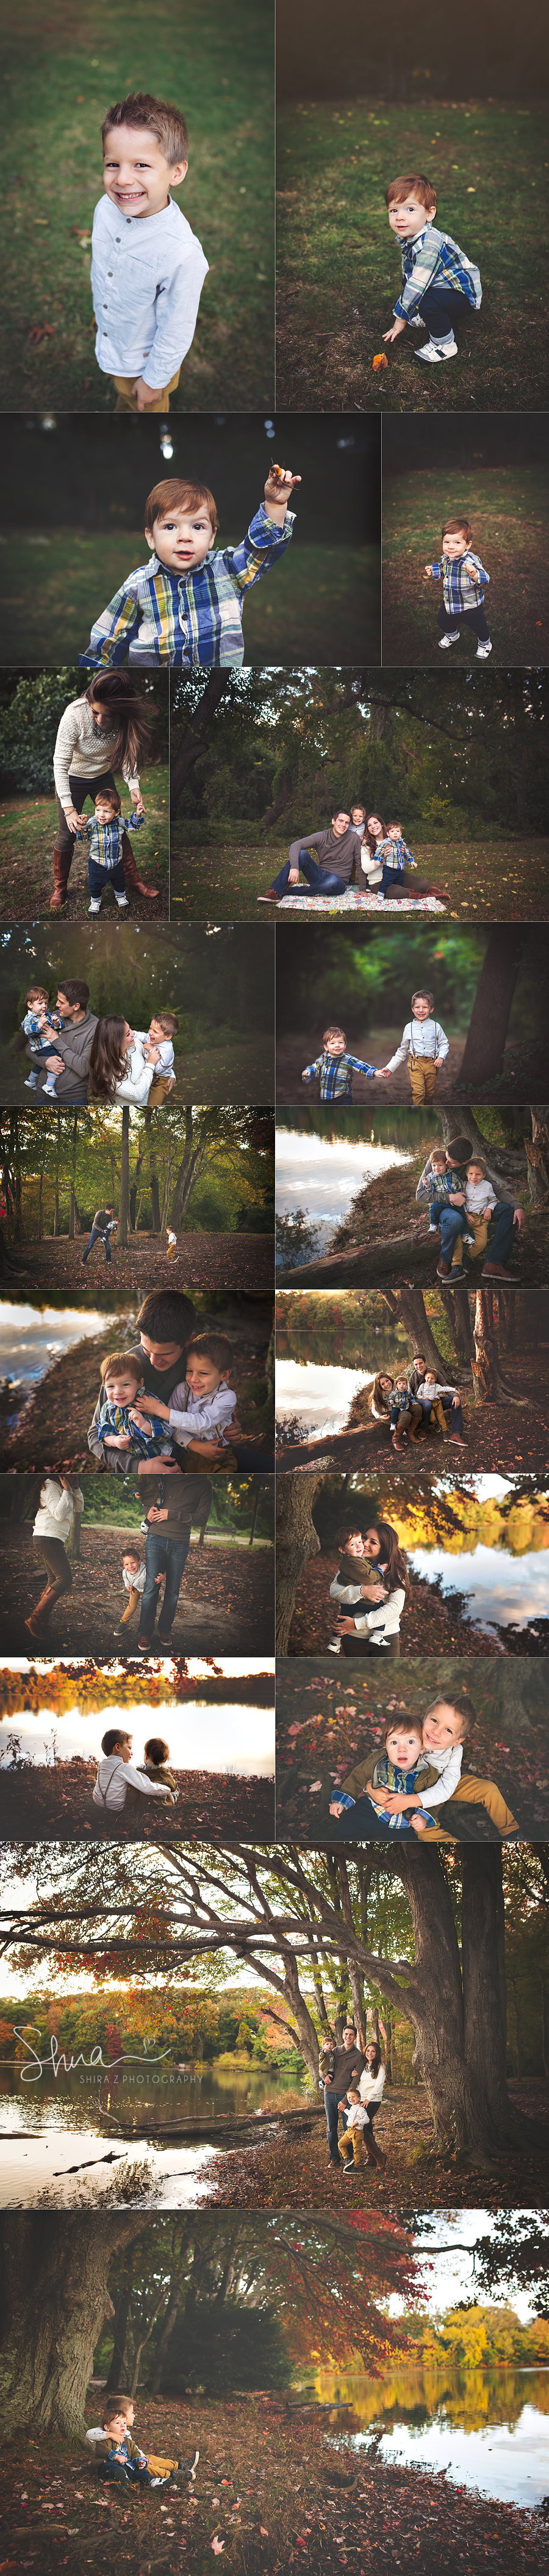 collage of images at Hempstead Lake Park of family with two little boys. A long island family photographers dream!